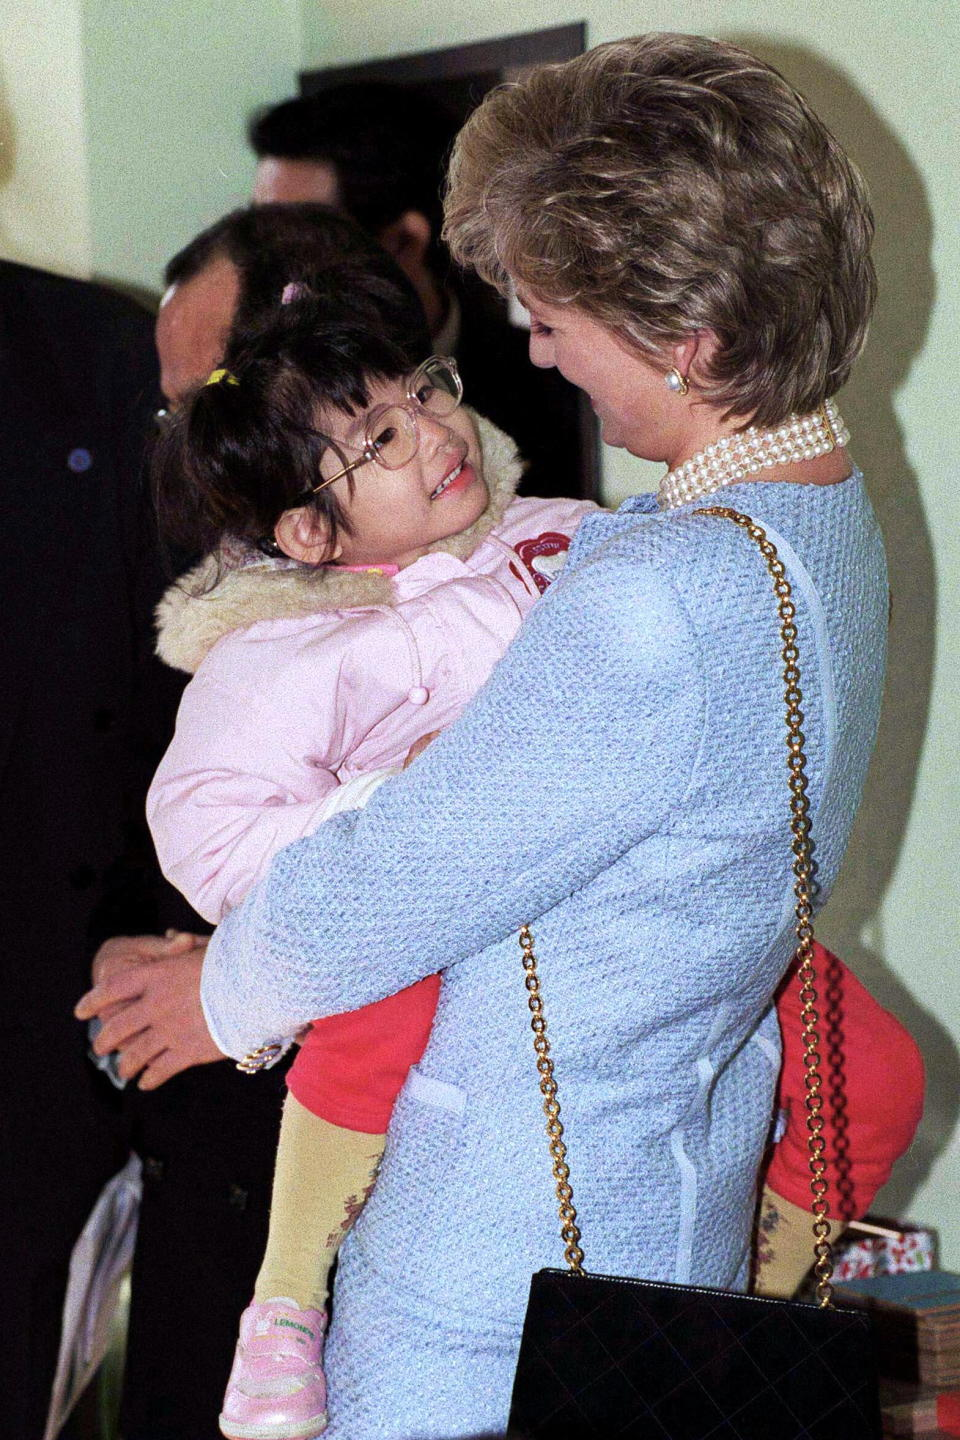 Princess Diana, pictured holding a child in Tokyo in 1995, was known as the 'People's Princess'. [Photo: Getty]